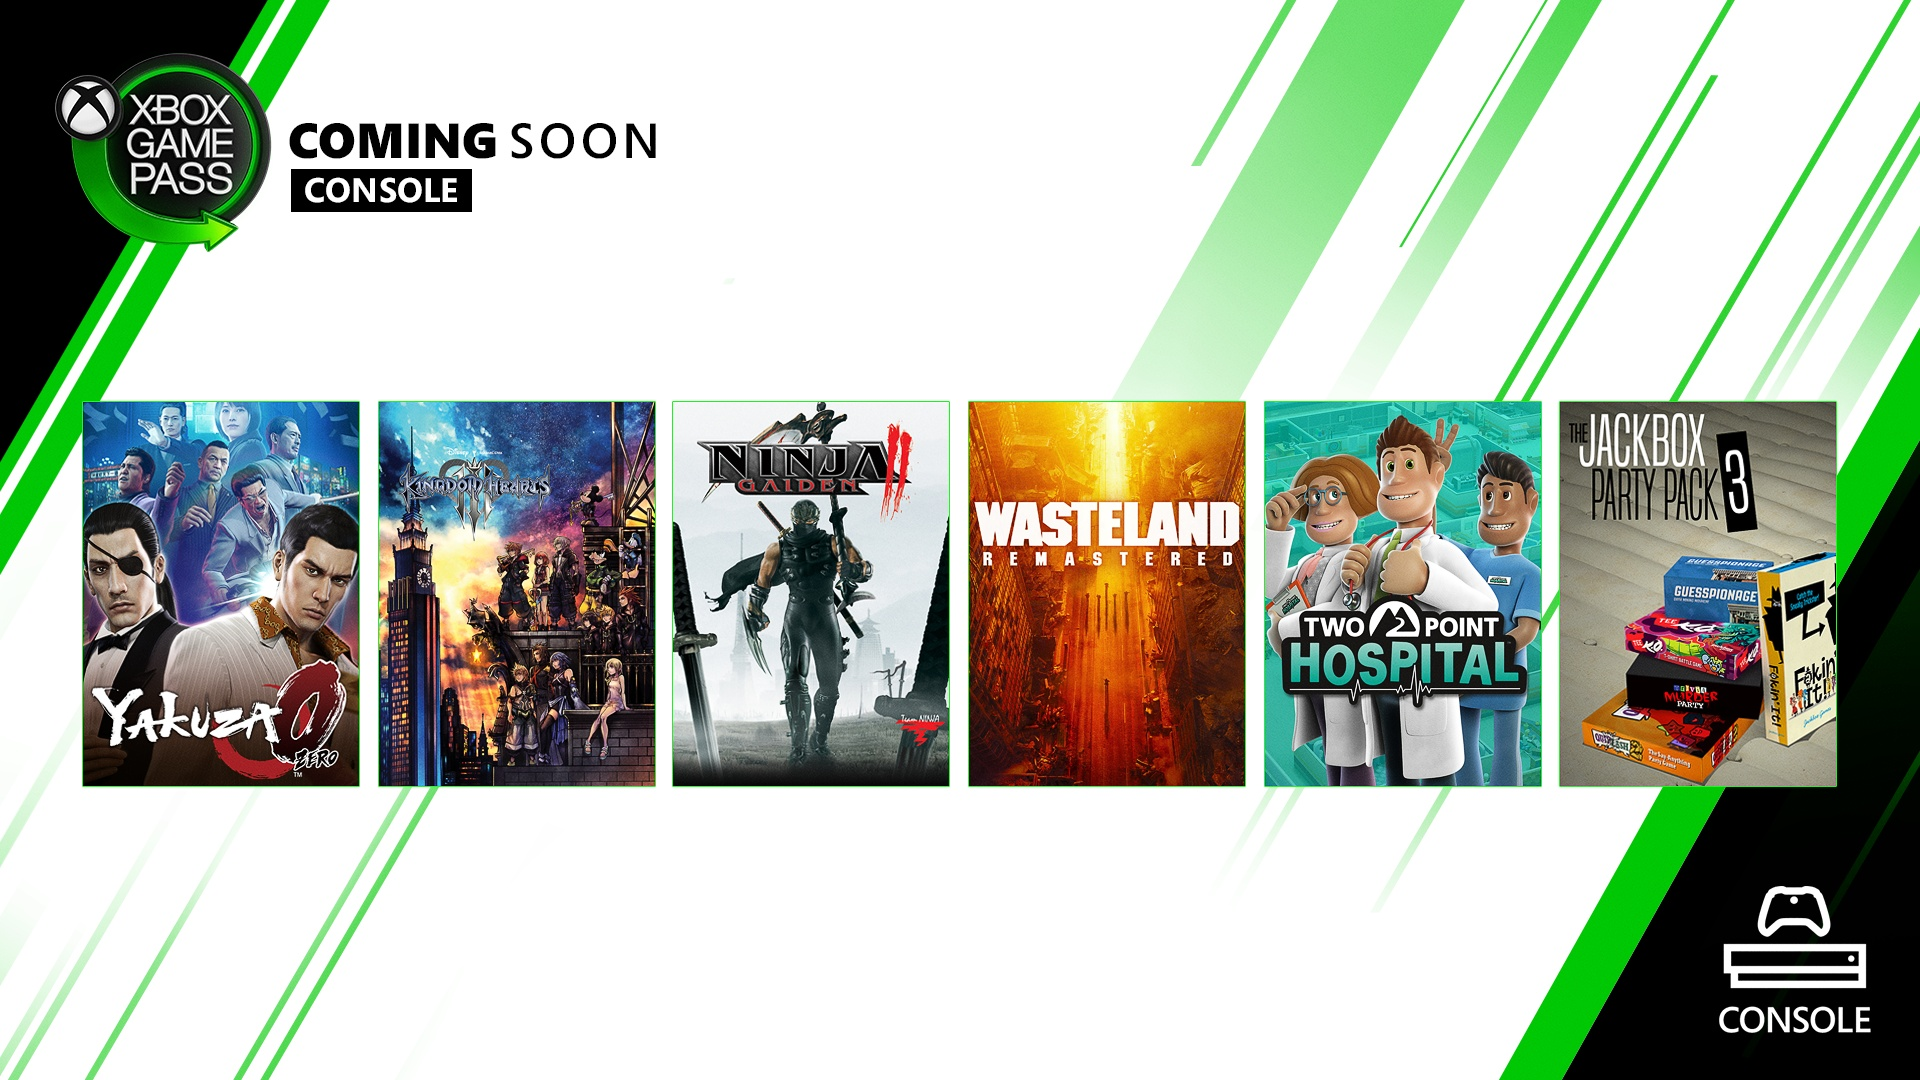 Coming Soon To Xbox Game Pass For Console Kingdom Hearts